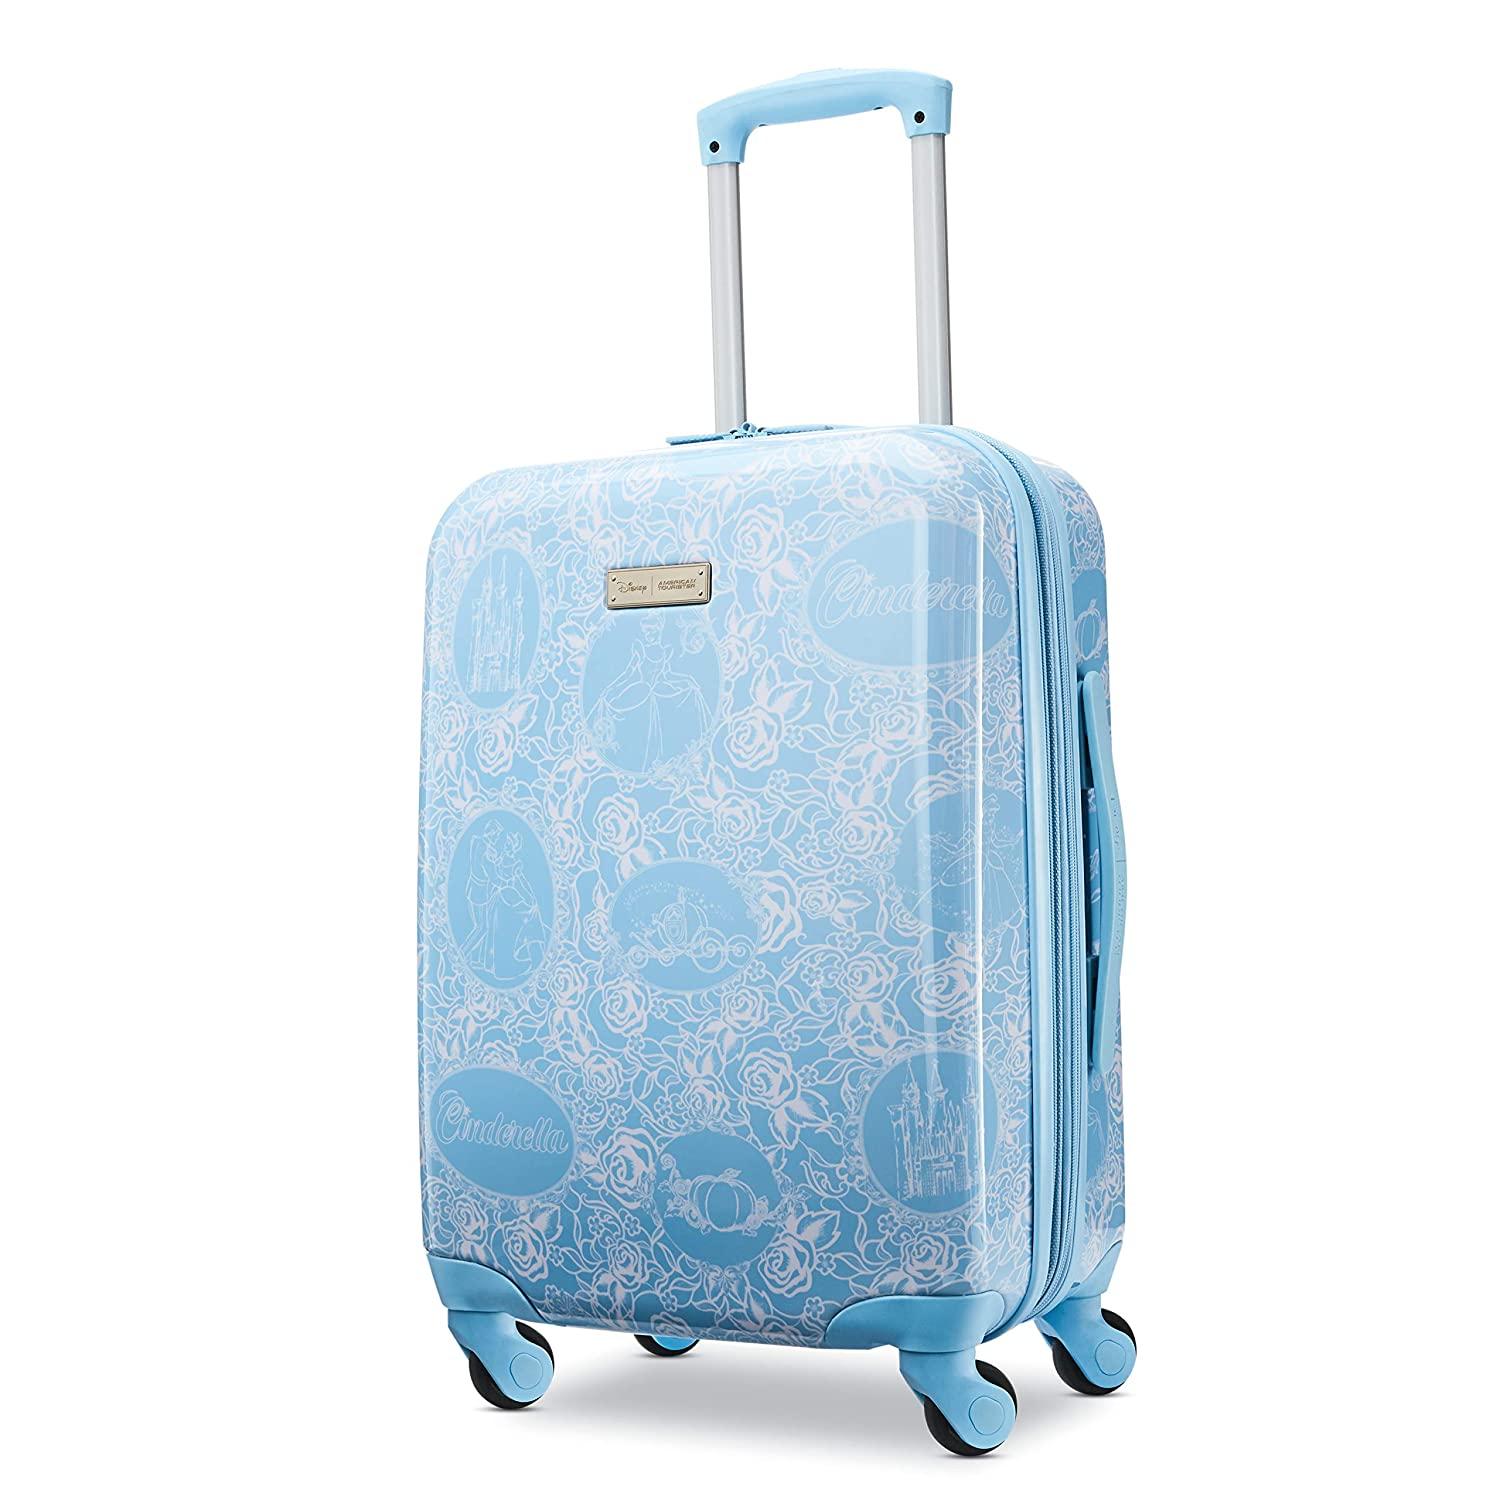 Image of American Tourister Carry-on, Cinderella Luggage